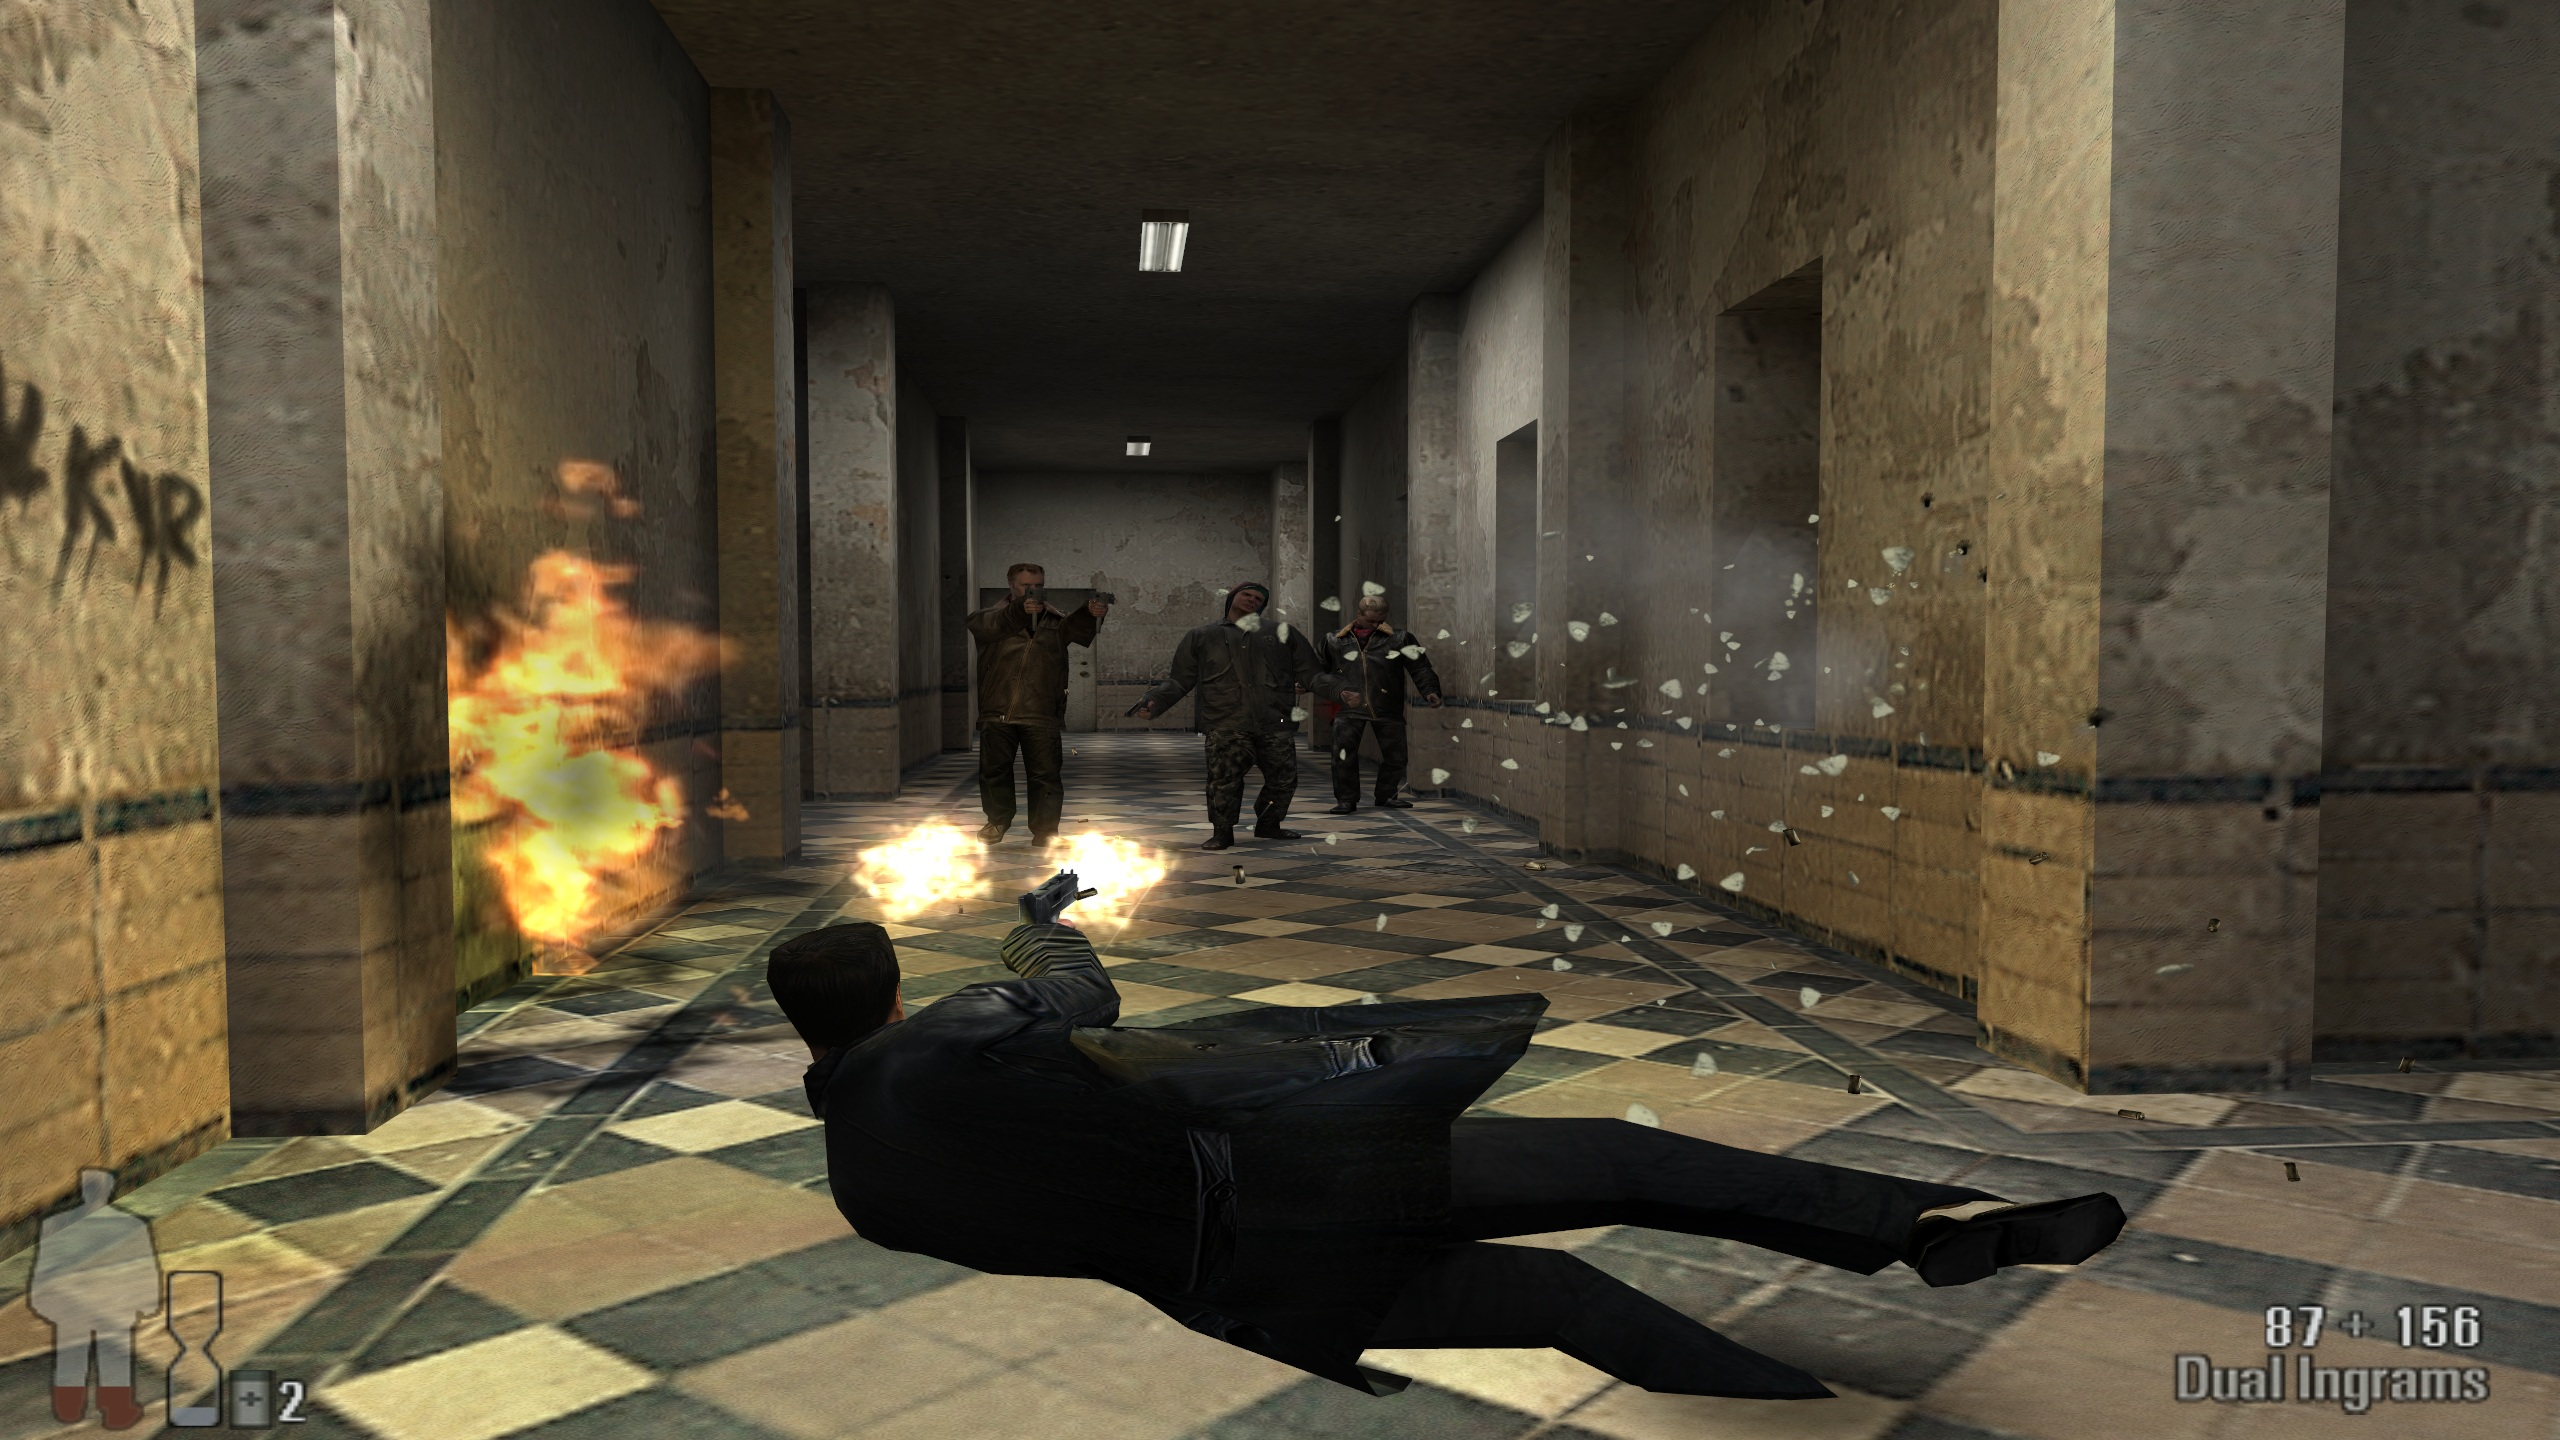 """Bullet time"" is the key to winning firefights. It was also the key selling point of the game."